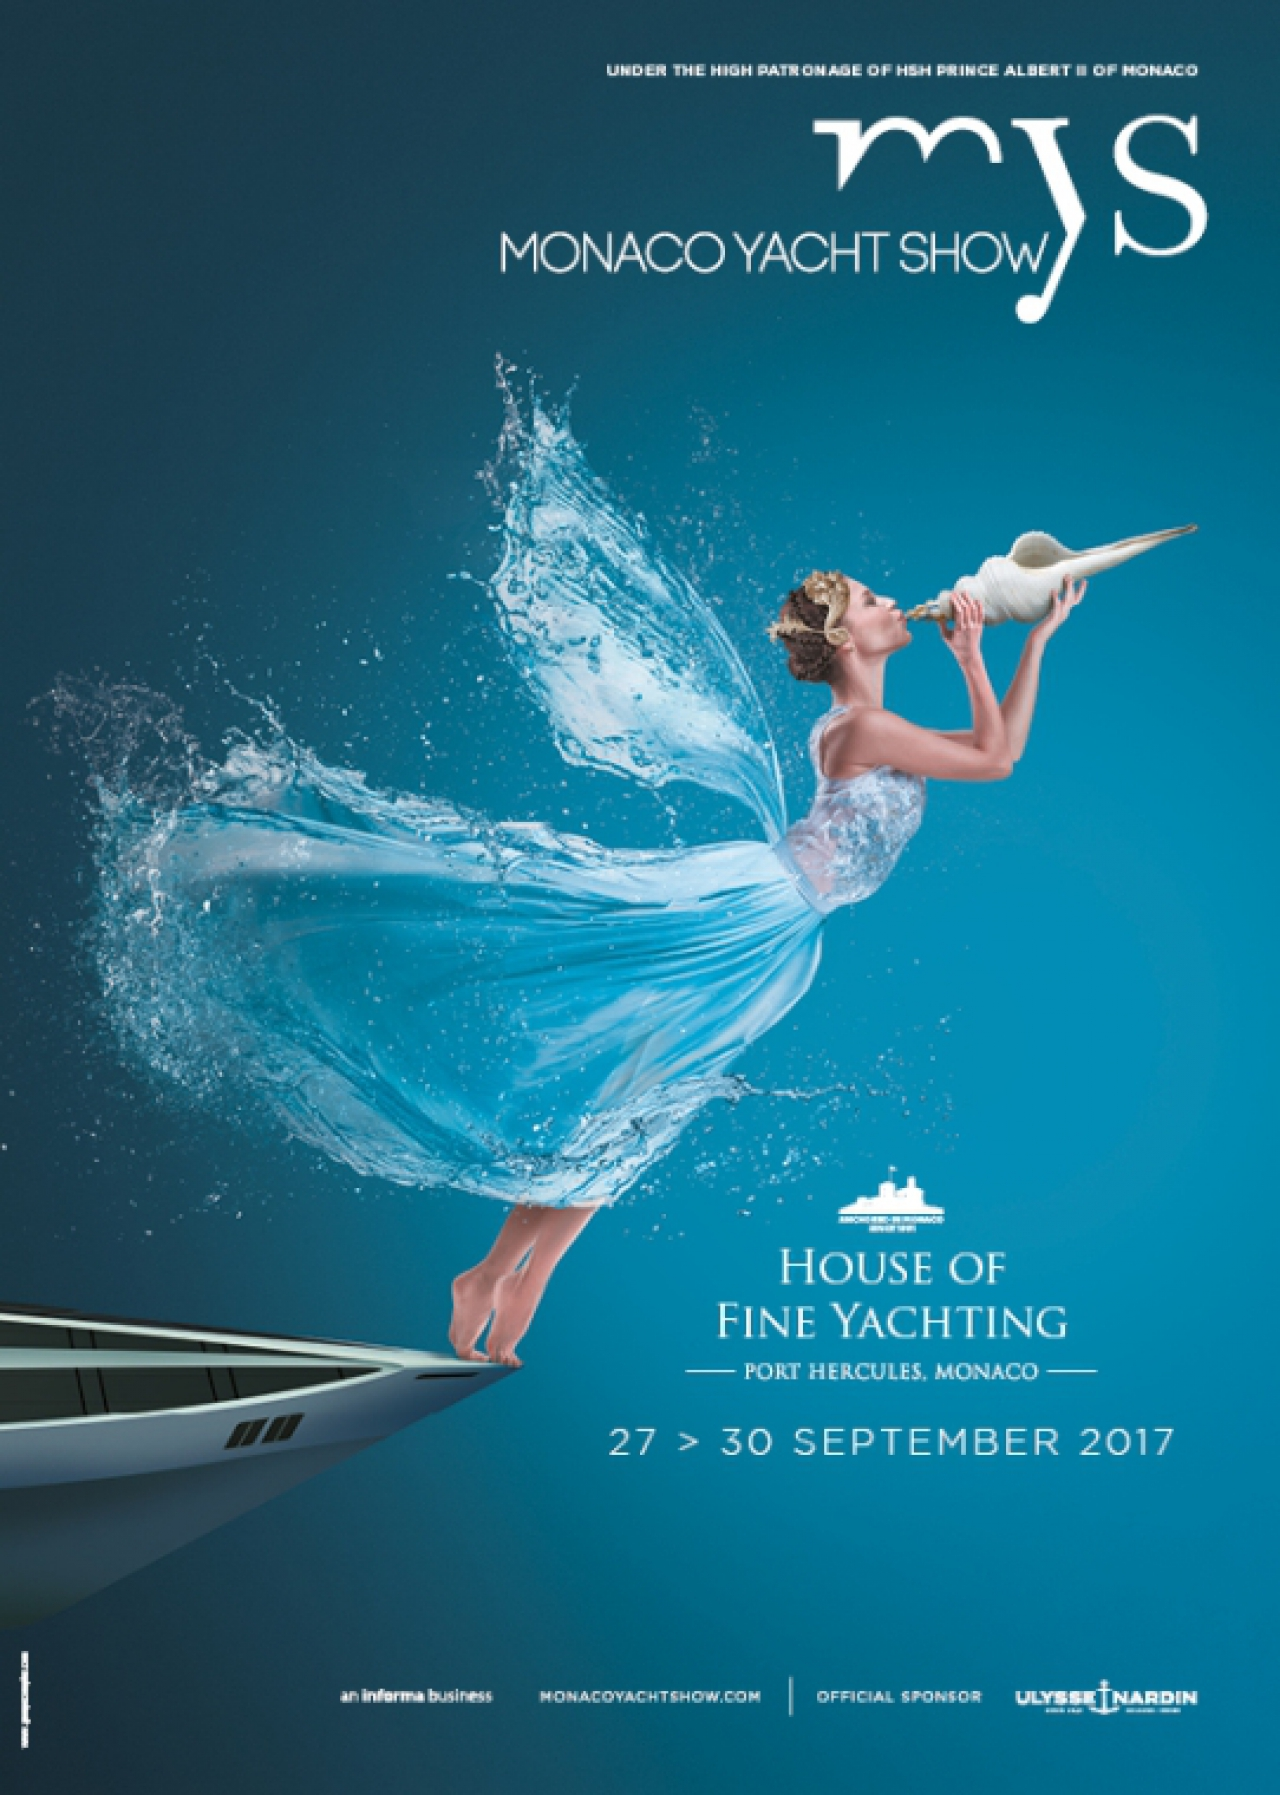 PrivatSea at the Monaco Yacht Show 2017